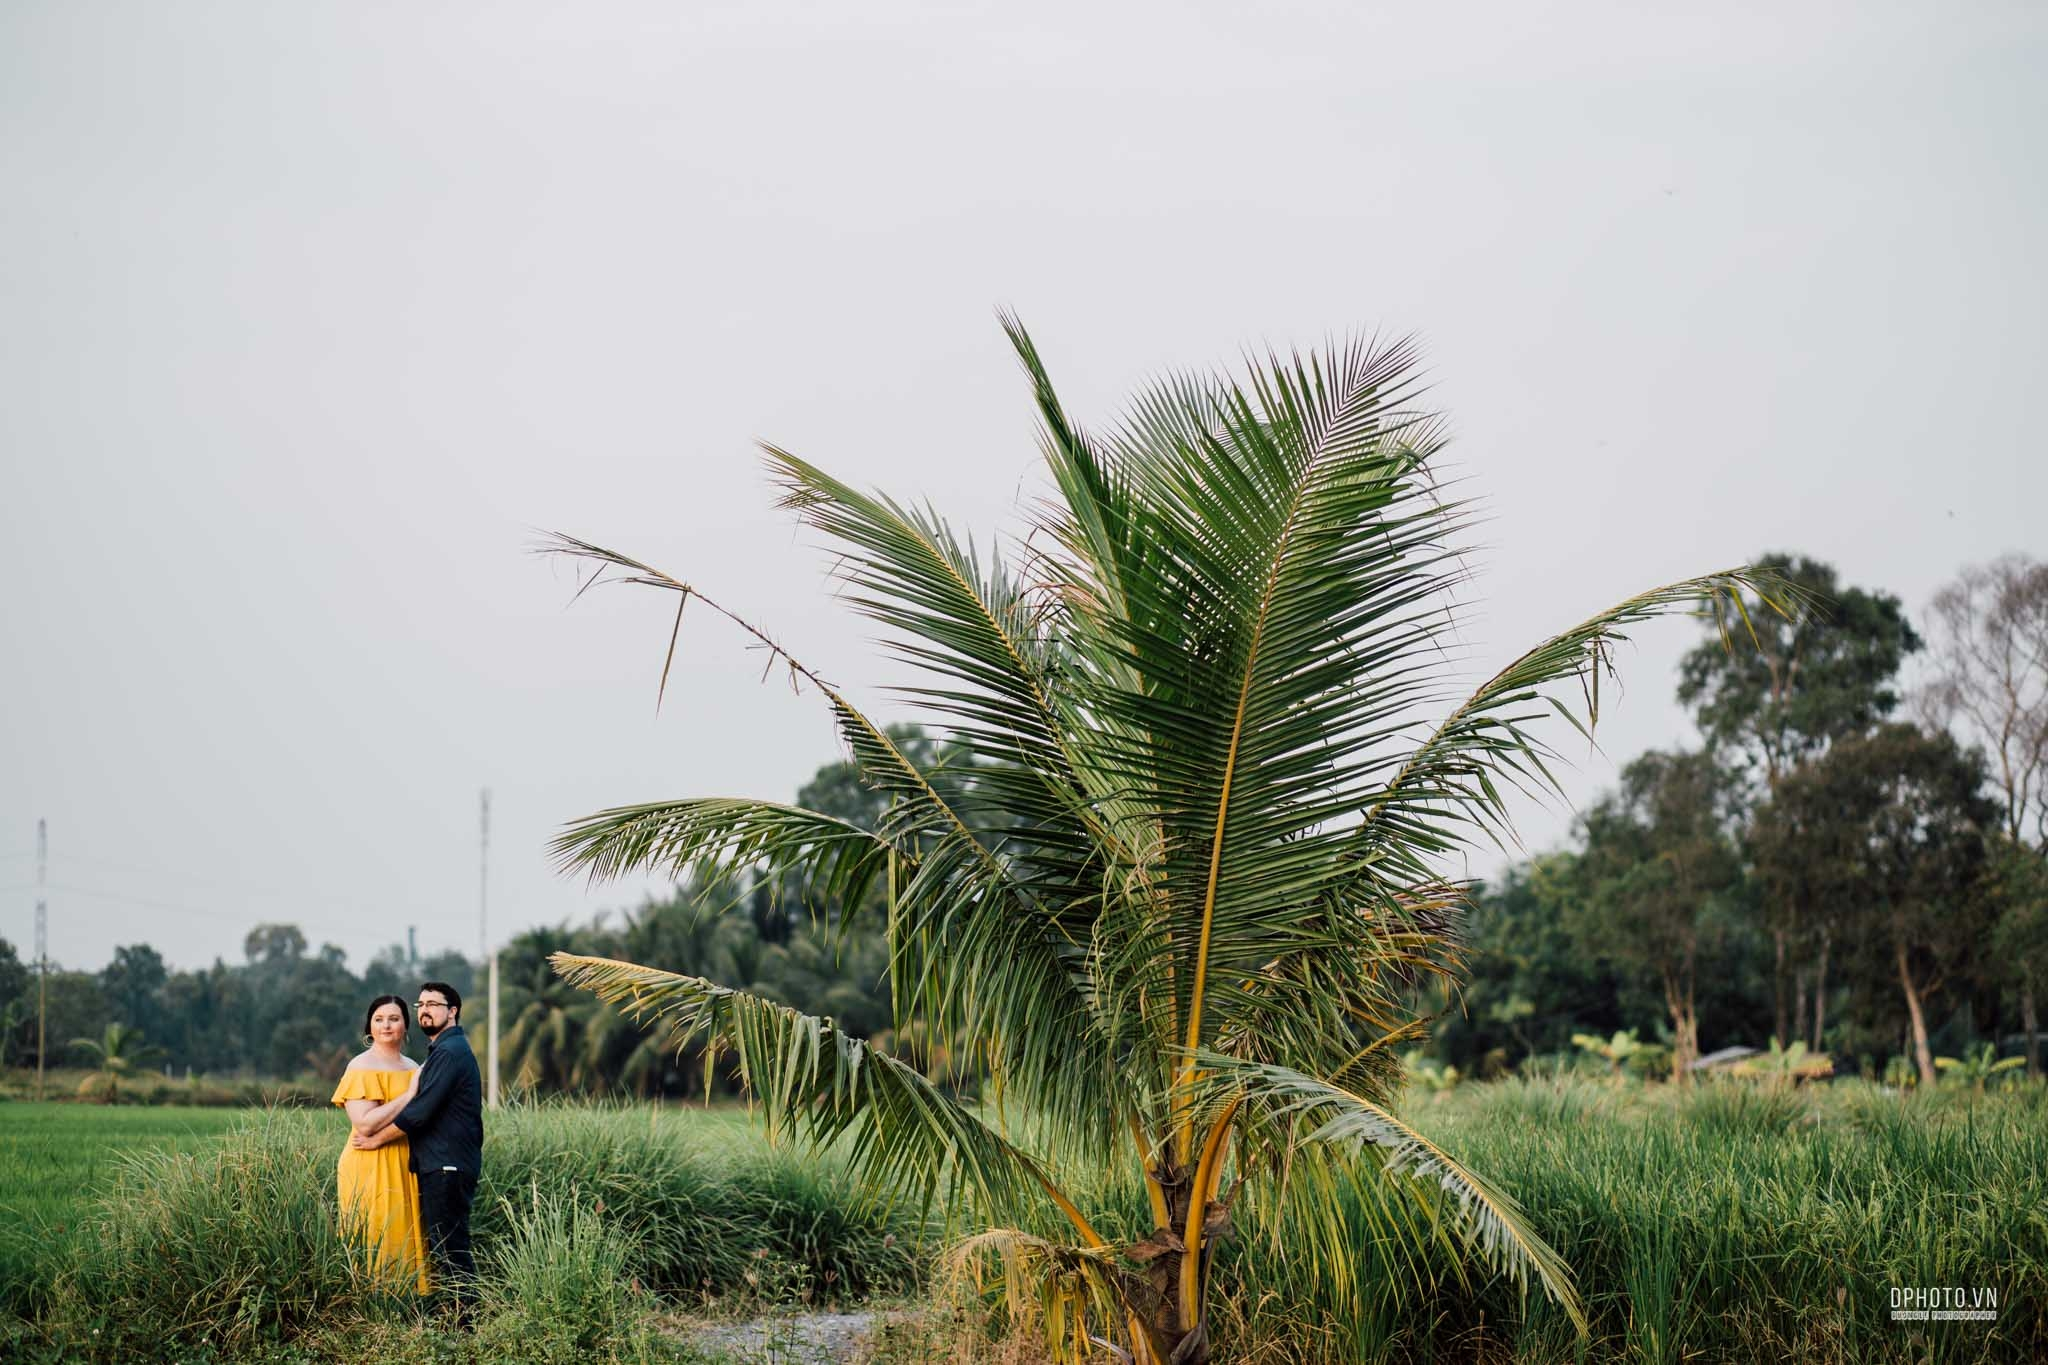 engagement_photo_in_sai_gon_ho_chi_minh_viet_nam73